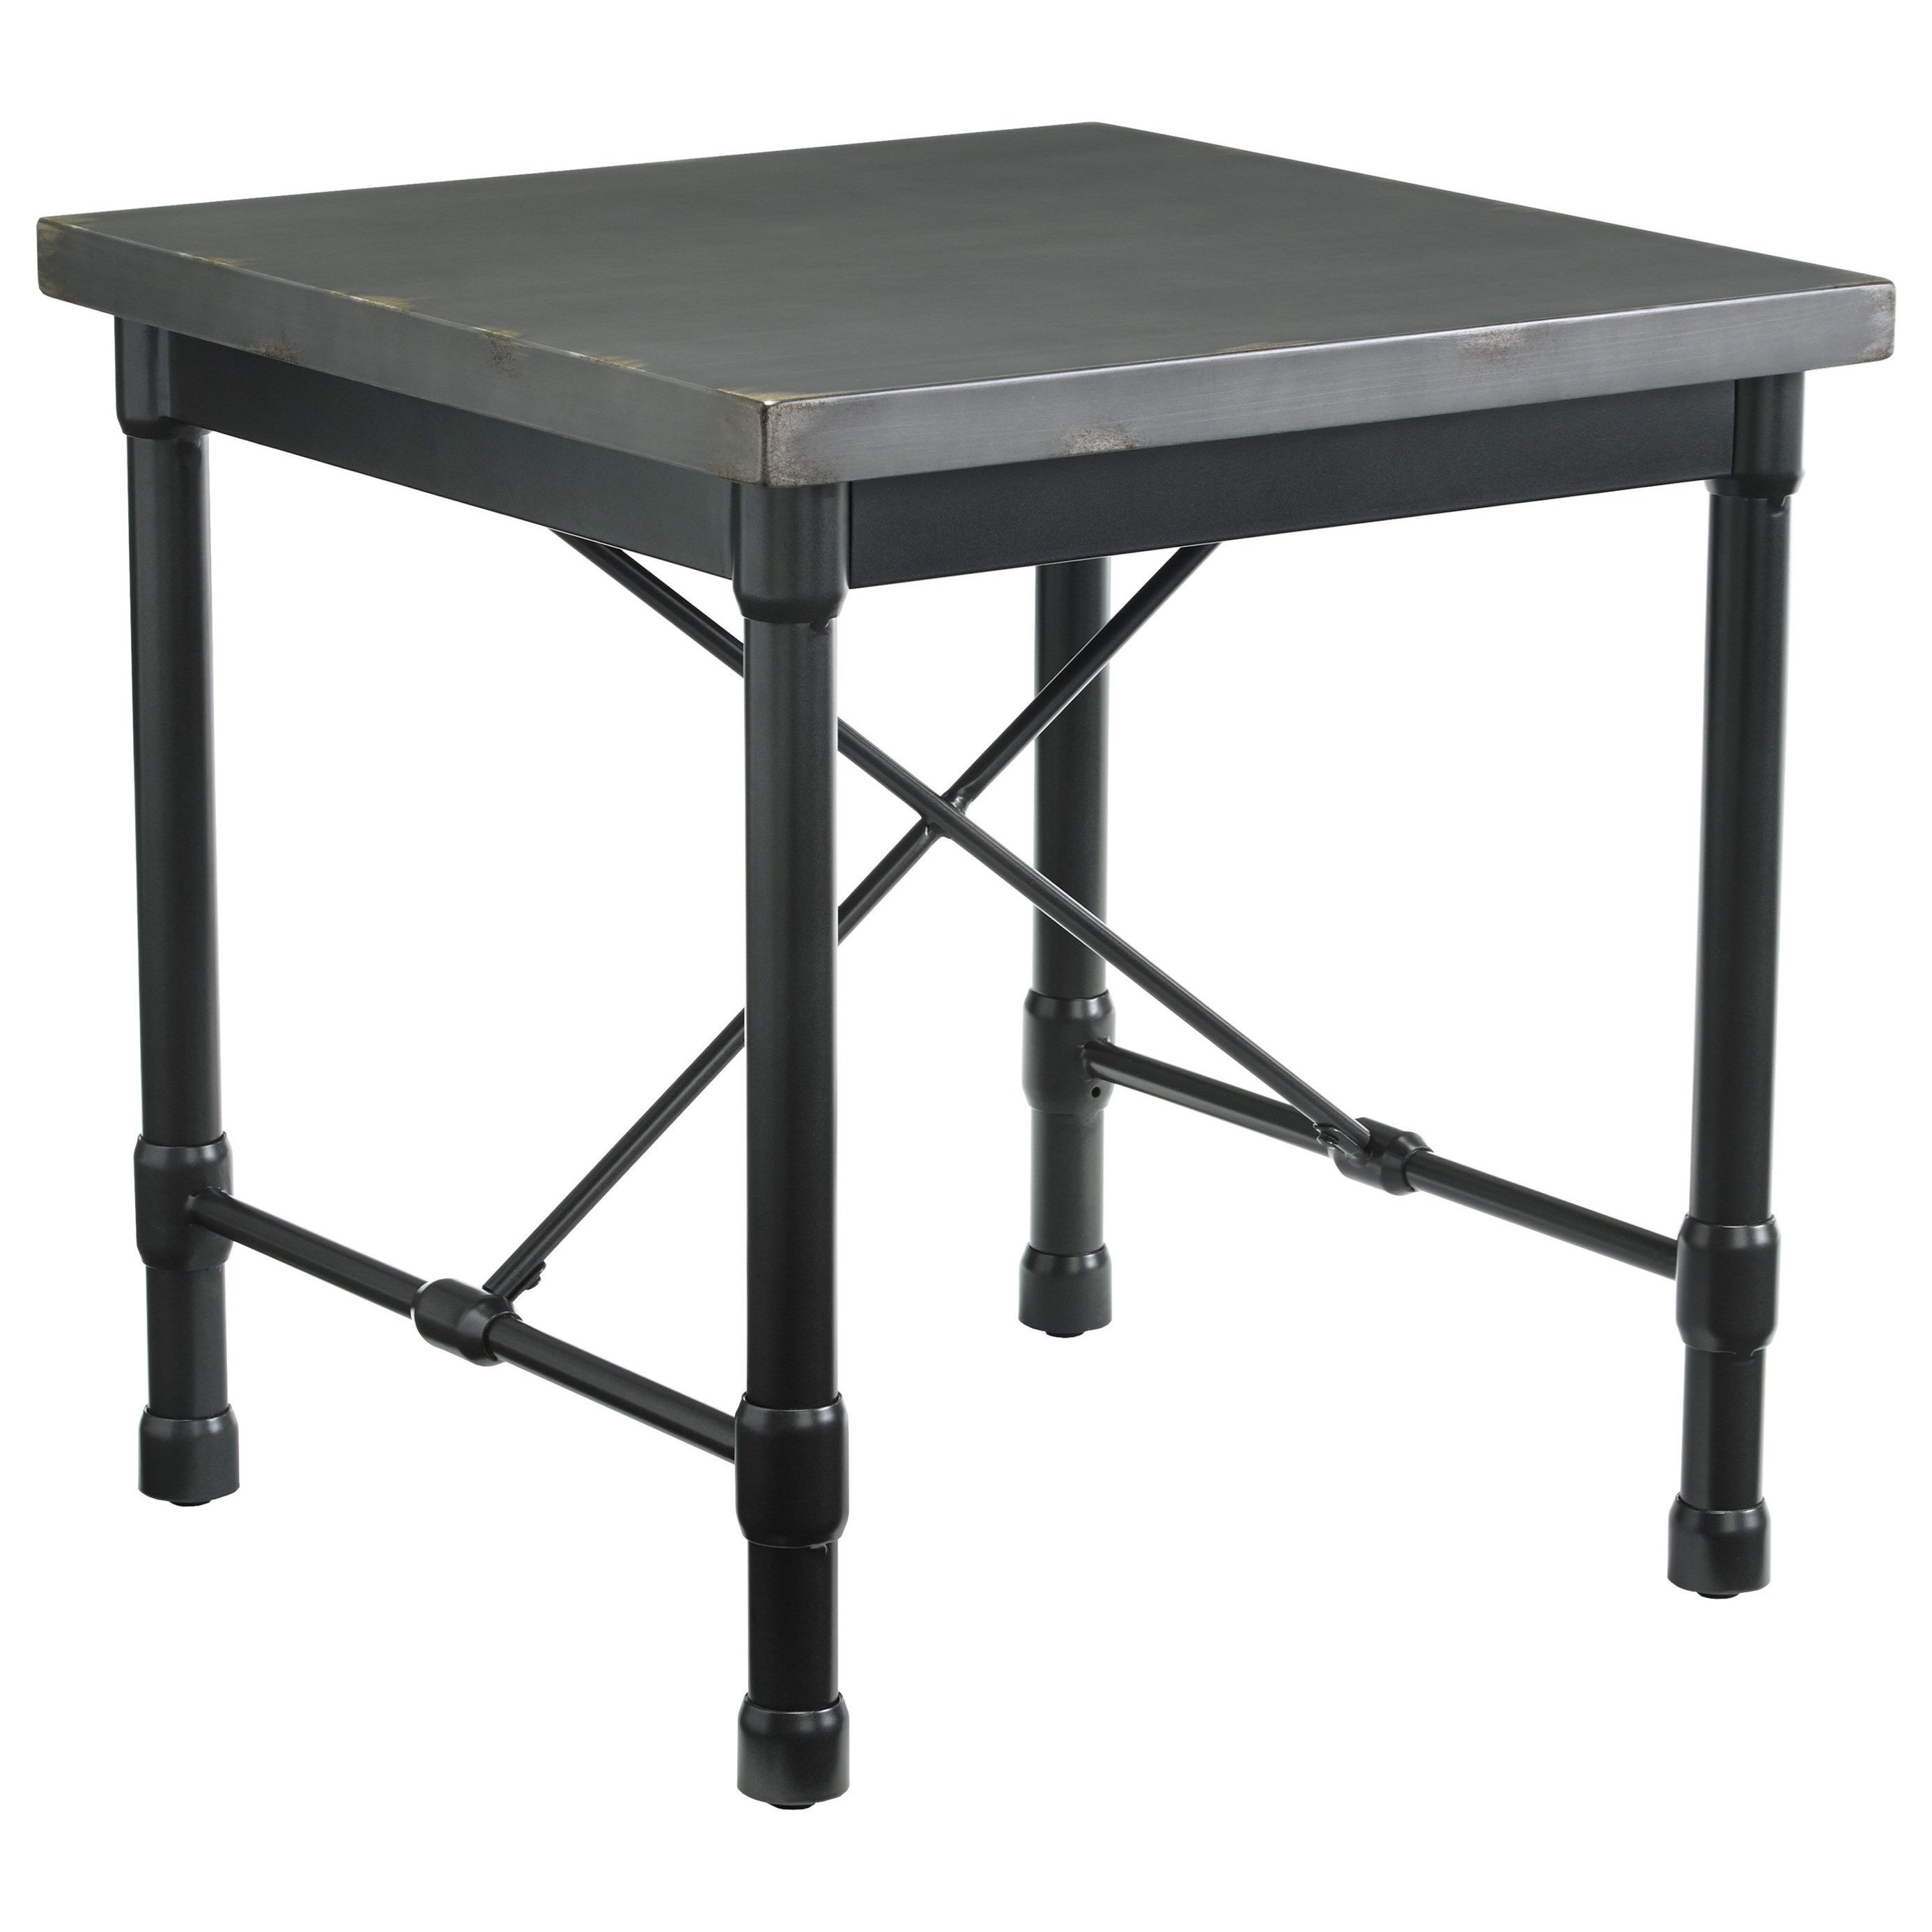 Signature Design by Ashley Minnona Square End Table - Item Number: T328-2